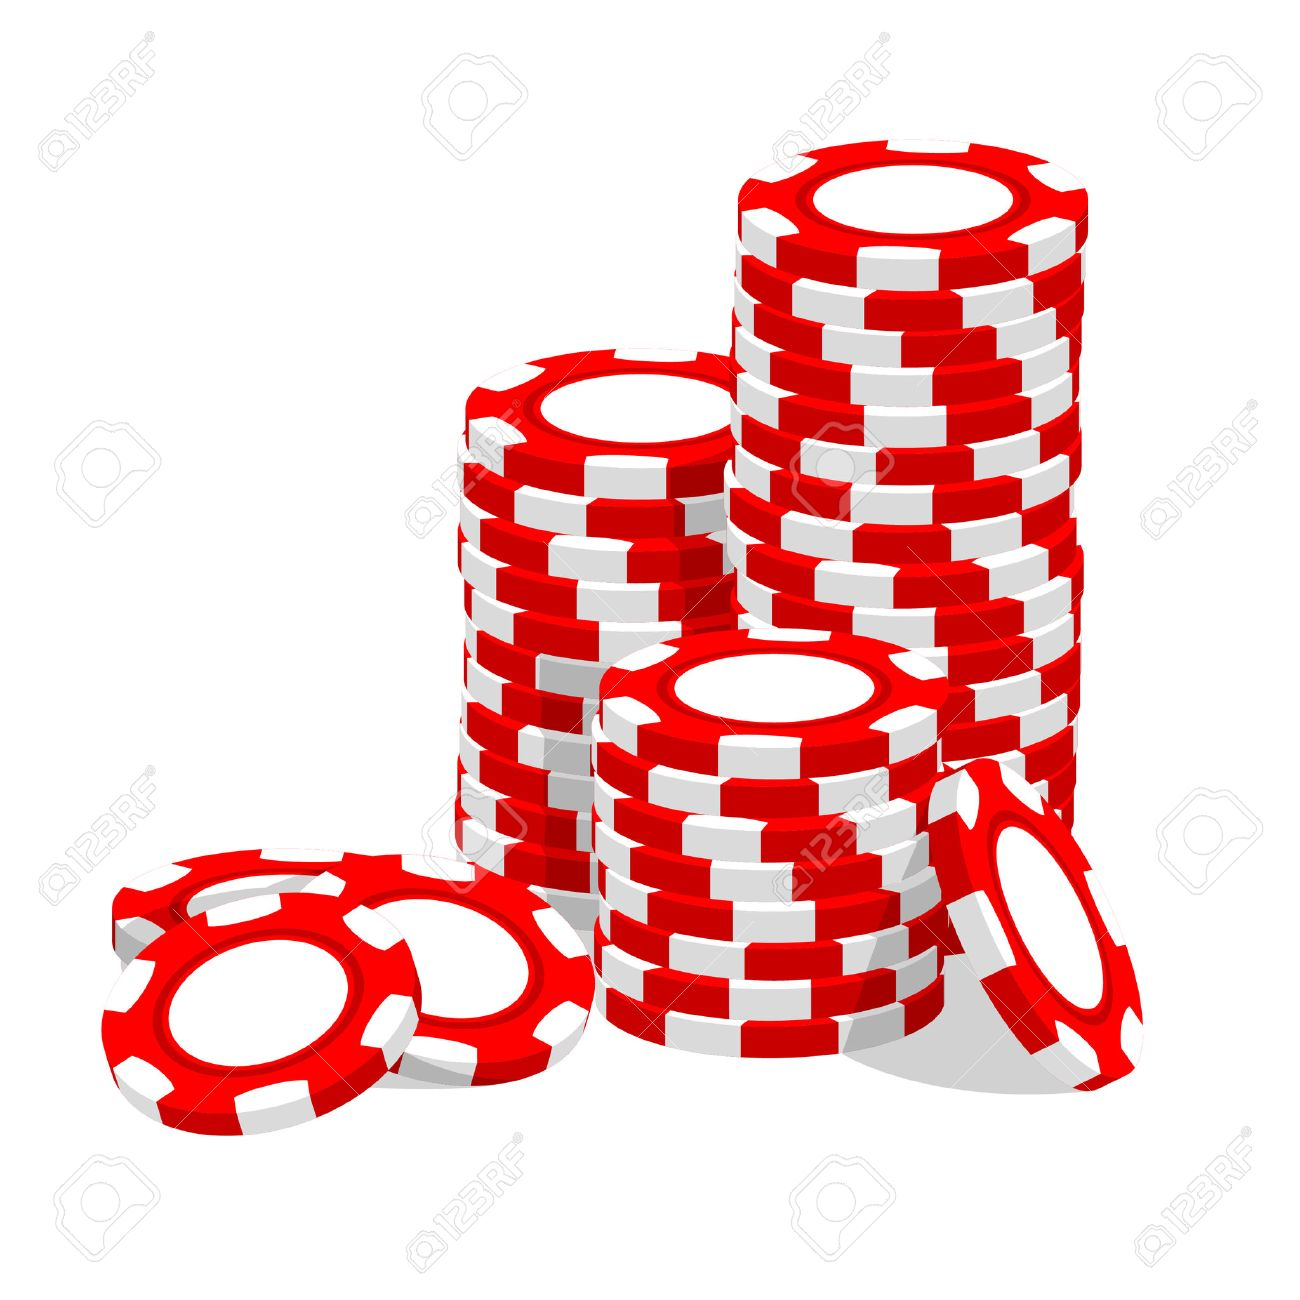 Traditional european roulette table vector illustration stock vector - Casino Illustration Red Chips On White Stock Vector 7793471